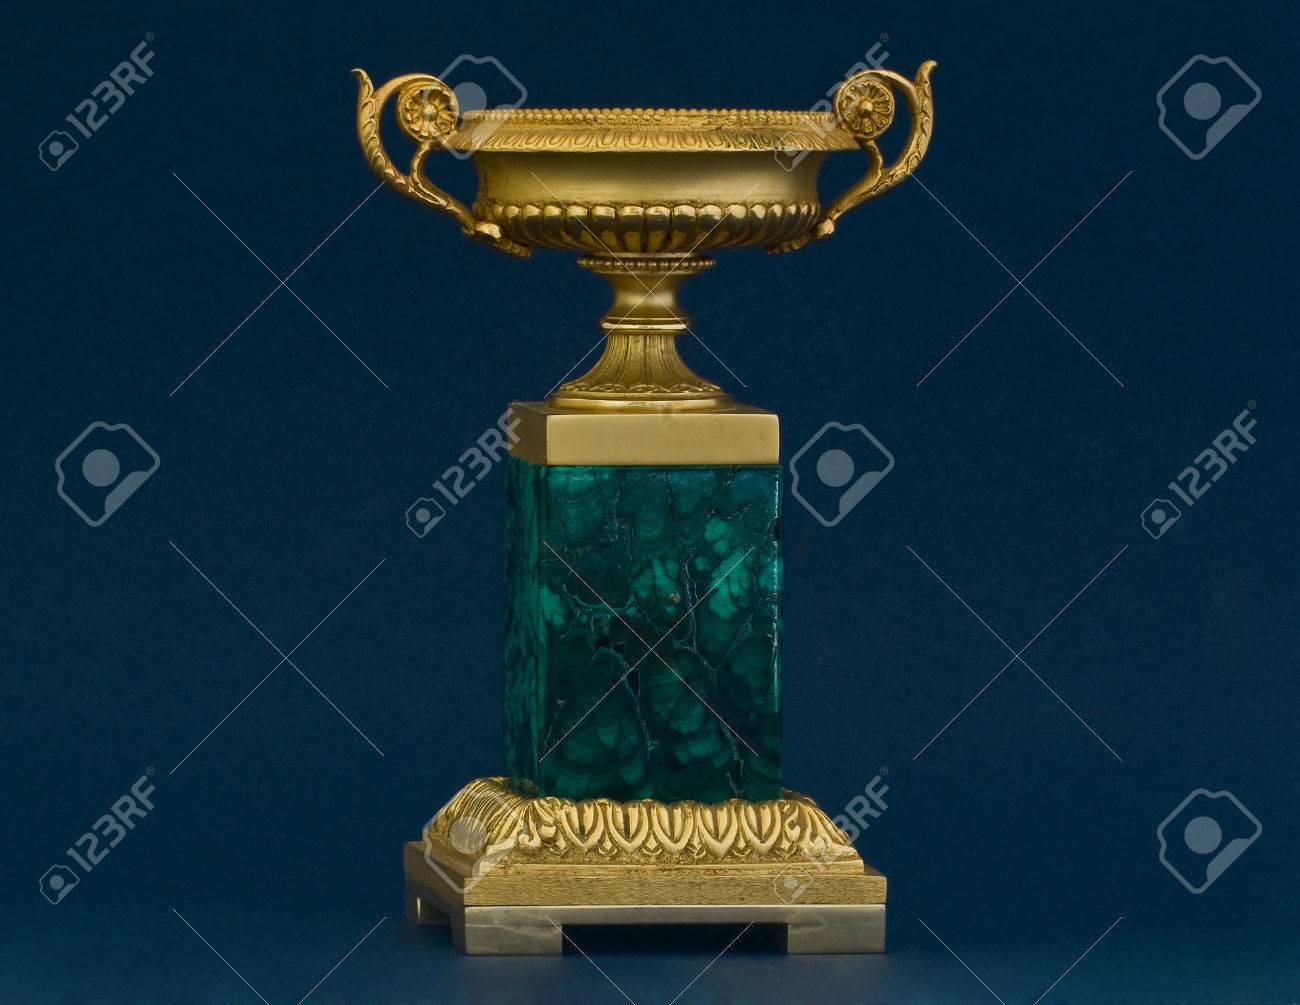 BRONZE GILTED AND MALACHITE VASE FRENCH STYLE - 32203625